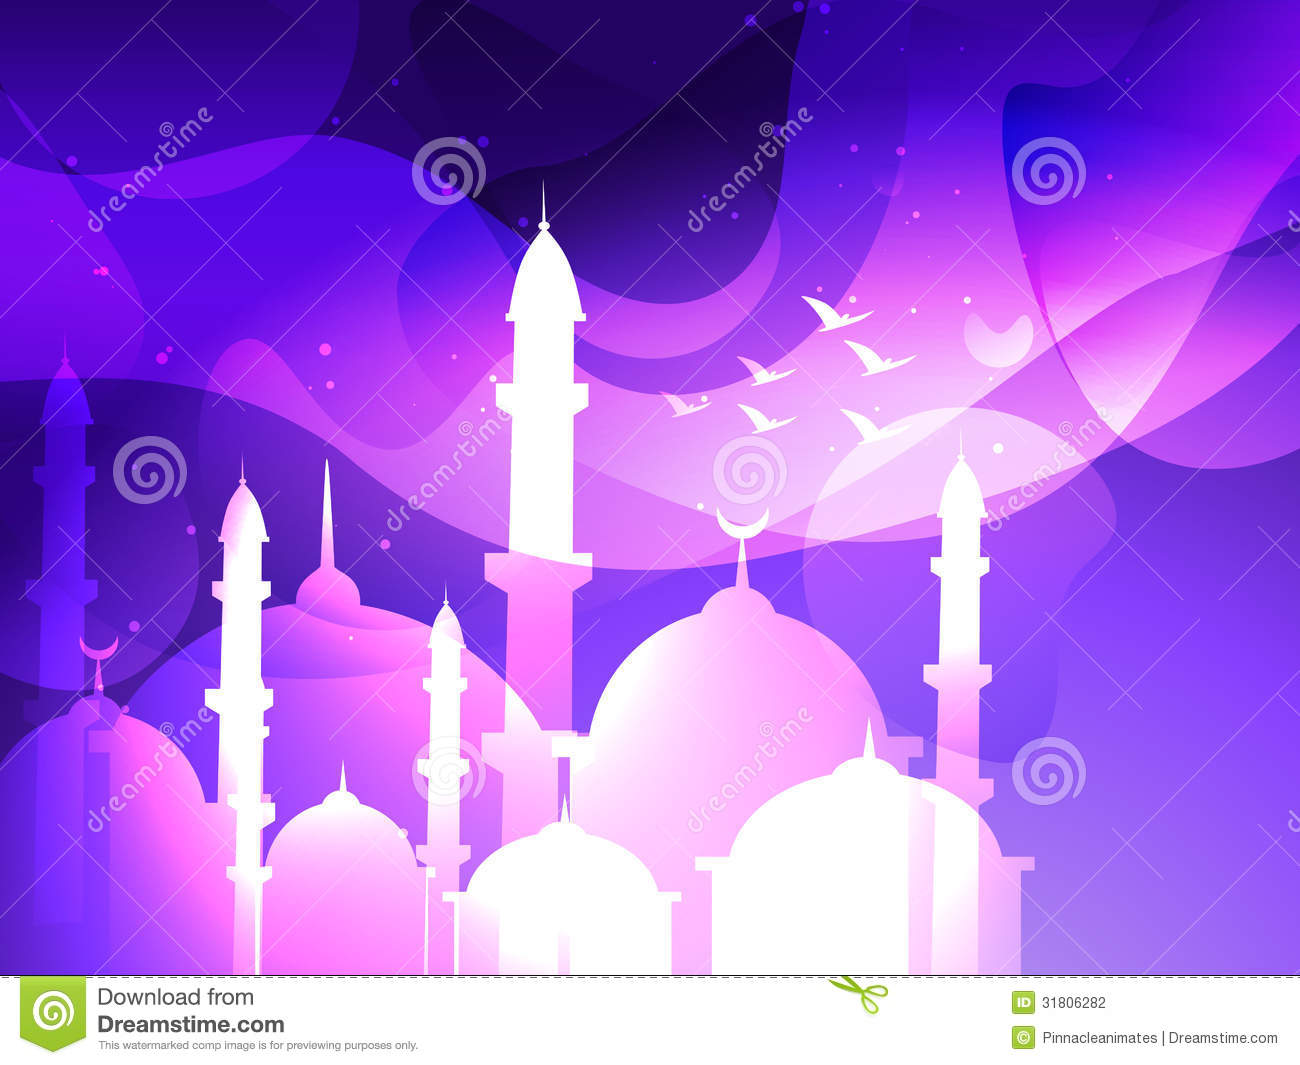 """my favorite festival eid Read this essay specially written for you on """"eid"""" in hindi language home  related essays: short essay on the """"reservation"""" in hindi sample essay on """"diwali"""" in hindi essay on """"diwali-festival of lights"""" in hindi short essay on flood in hindi."""